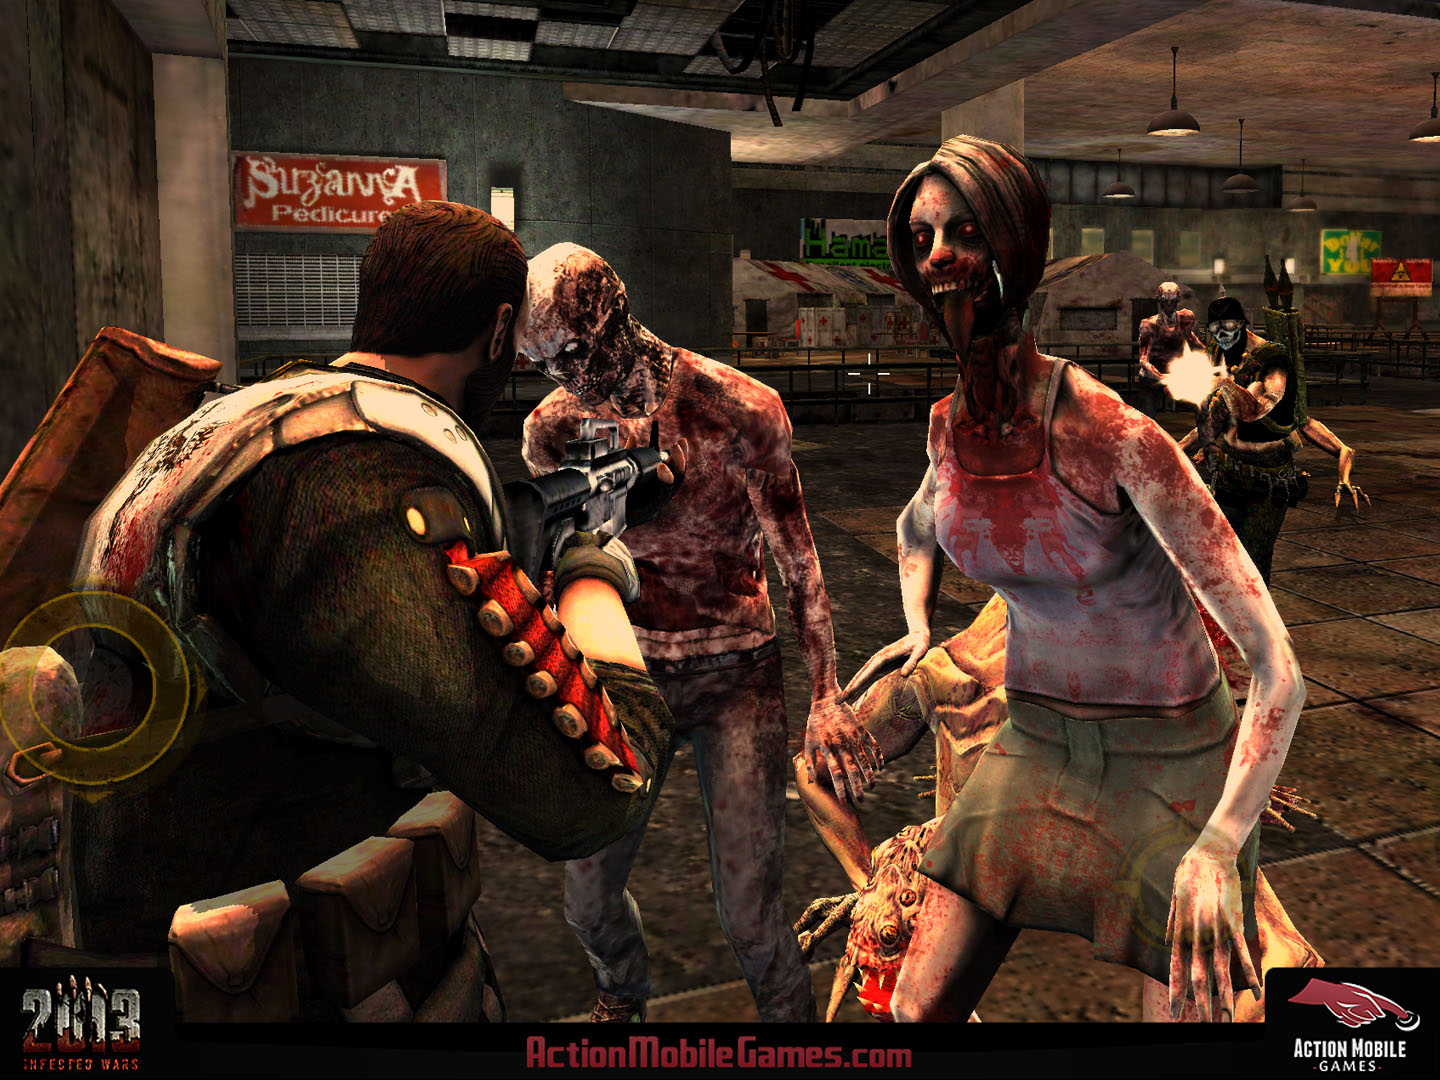 Shoot zombies alongside your friends in upcoming co-op iOS blaster 2013: Infected Wars